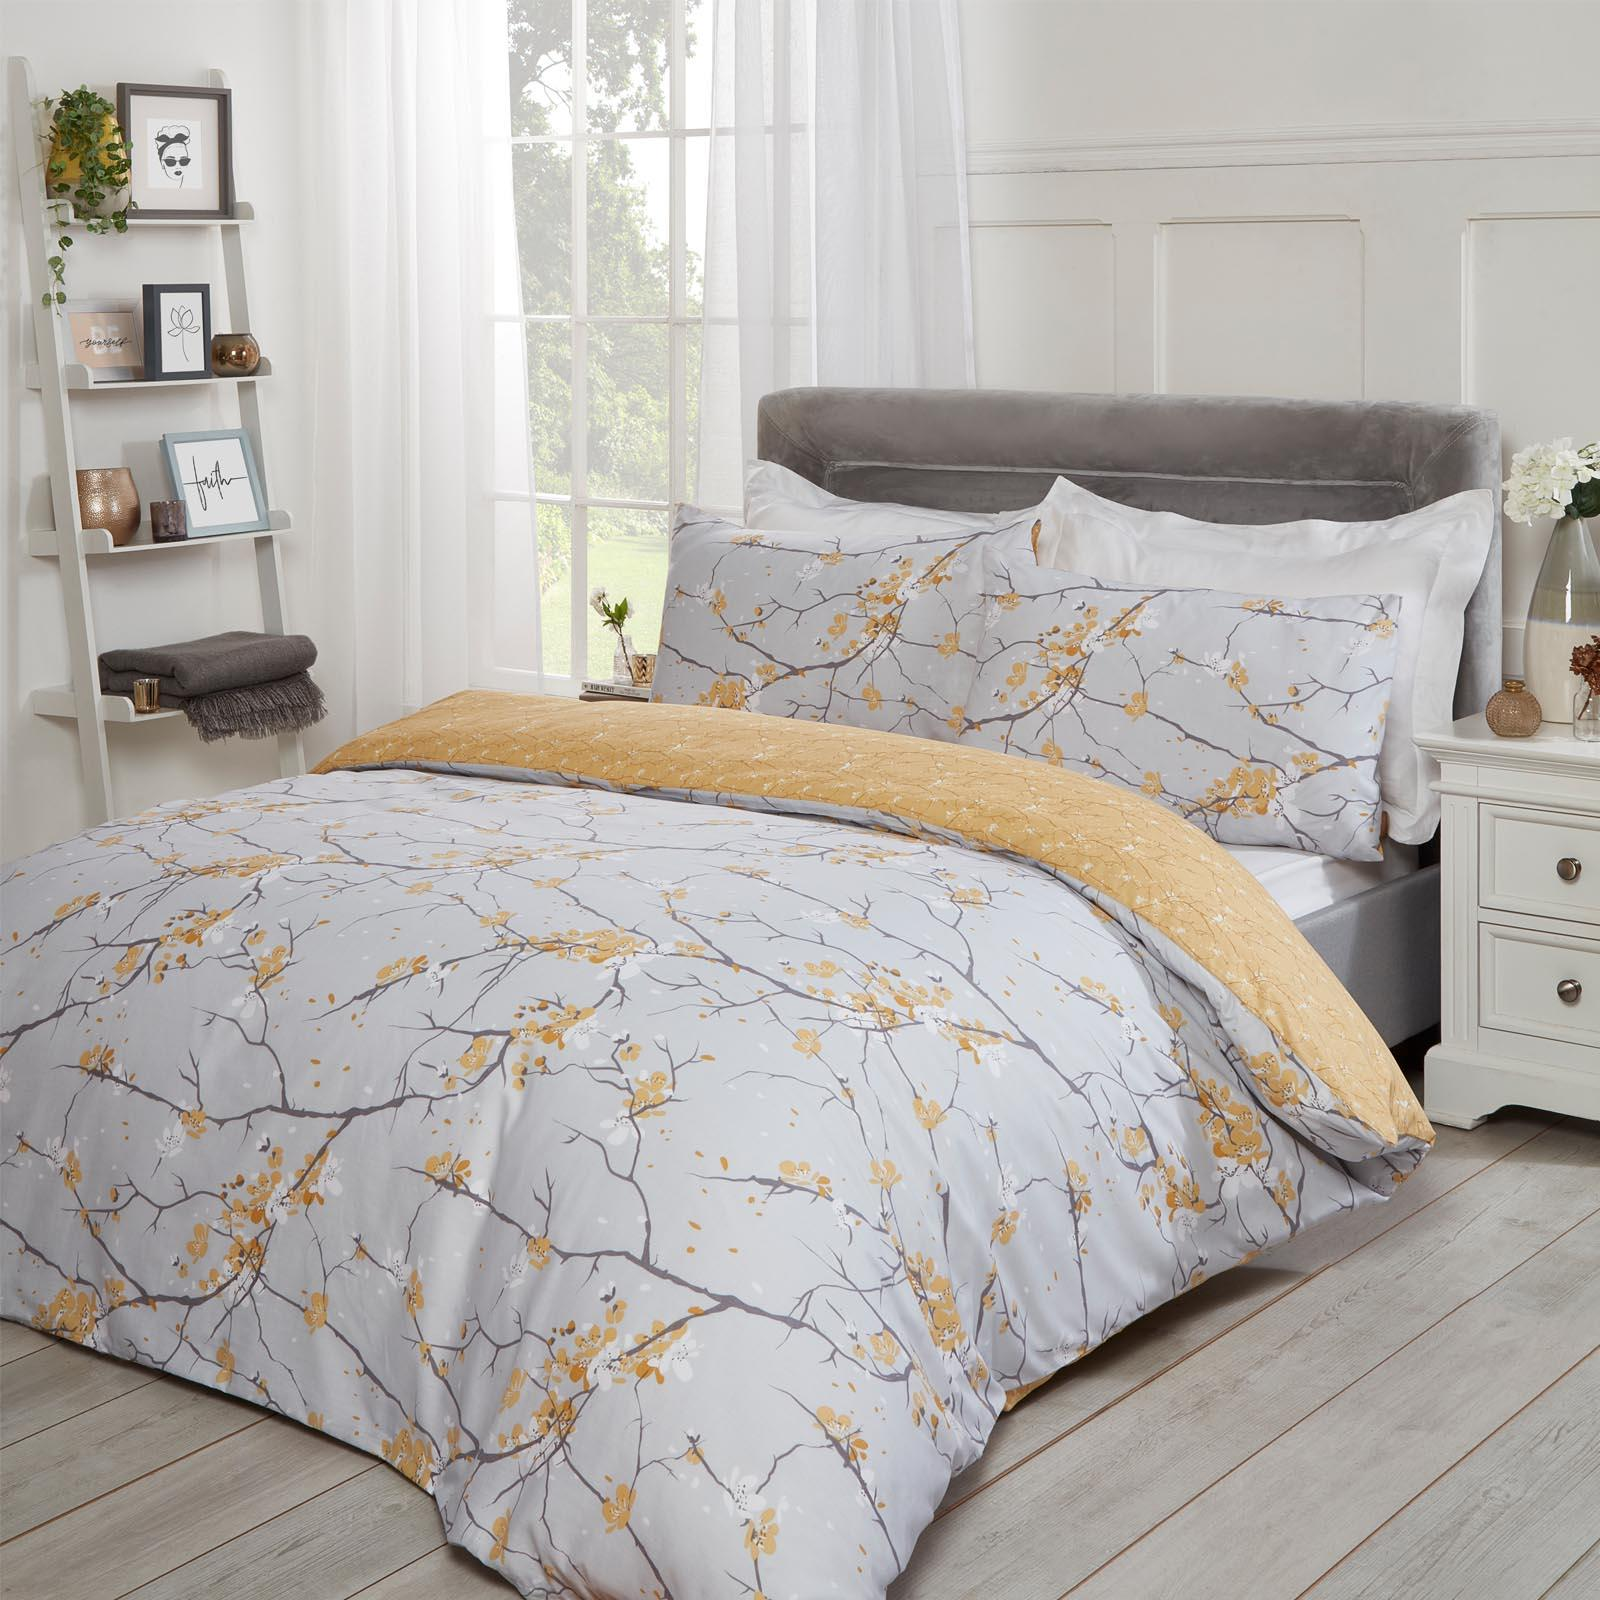 thumbnail 17 - Dreamscene Spring Blossoms Duvet Cover with Pillowcases Bedding Set Blush Ochre